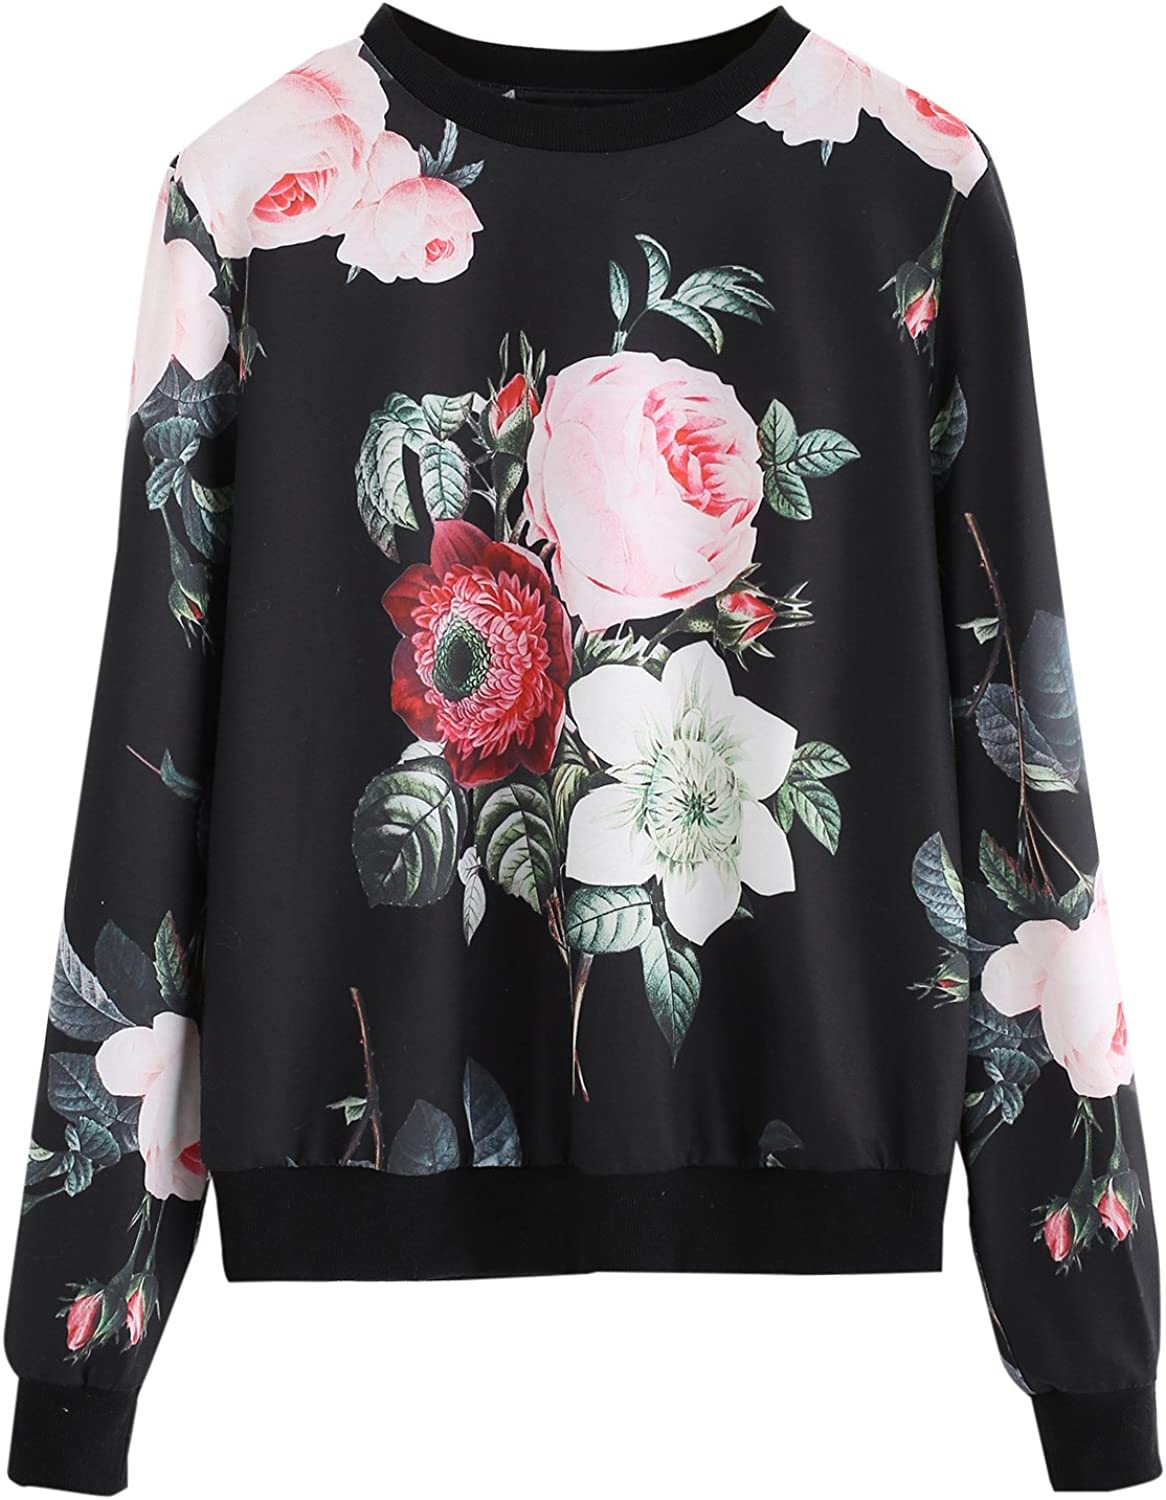 ROMWE Women's Casual Floral Print Long Sleeve Pullover Tops Lightweight Sweatshirt